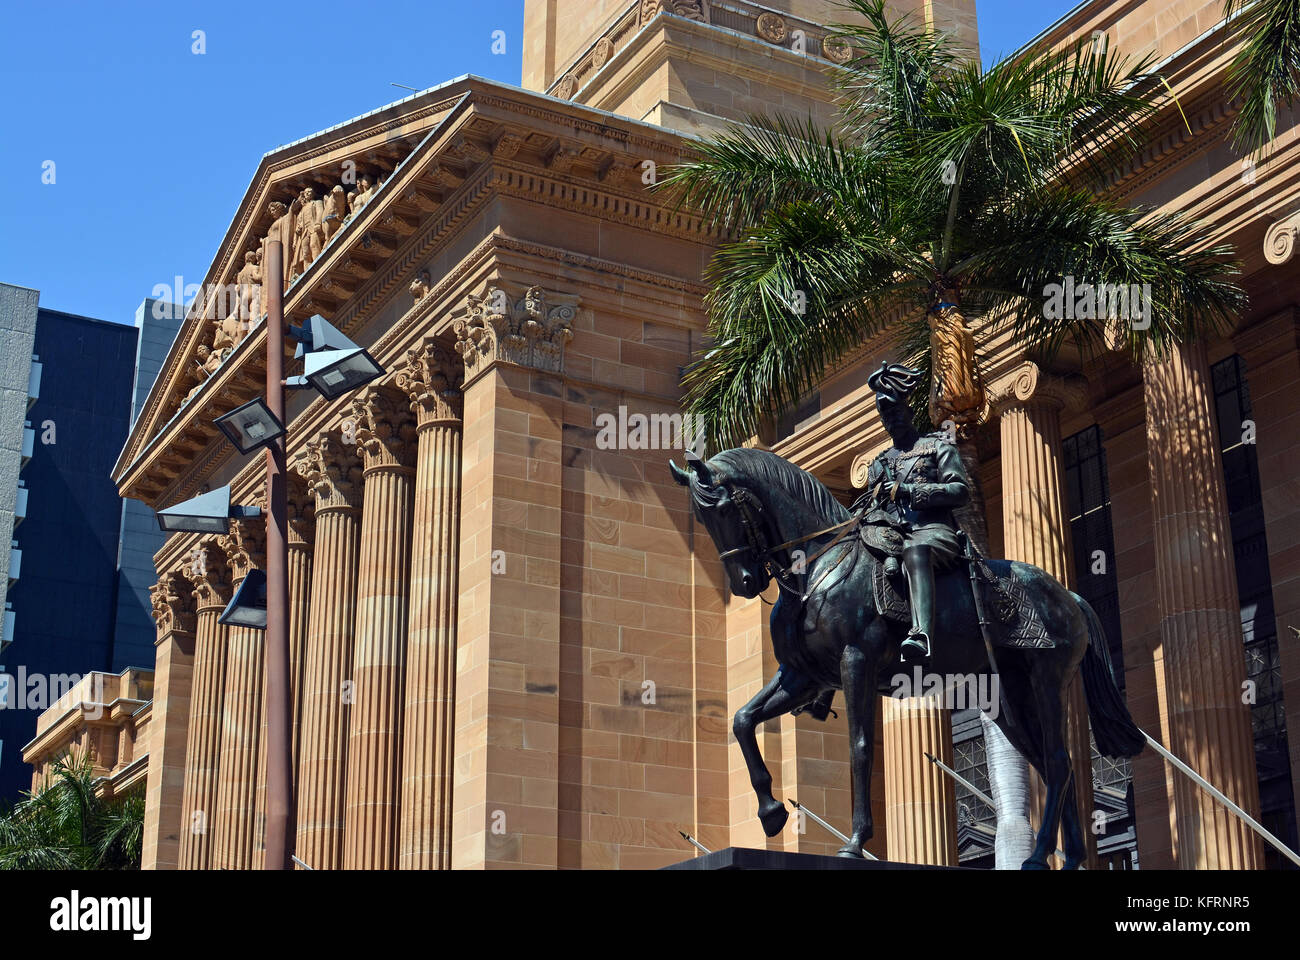 Brisbane City Hall on a Spring Morning, Queensland Australia. - Stock Image